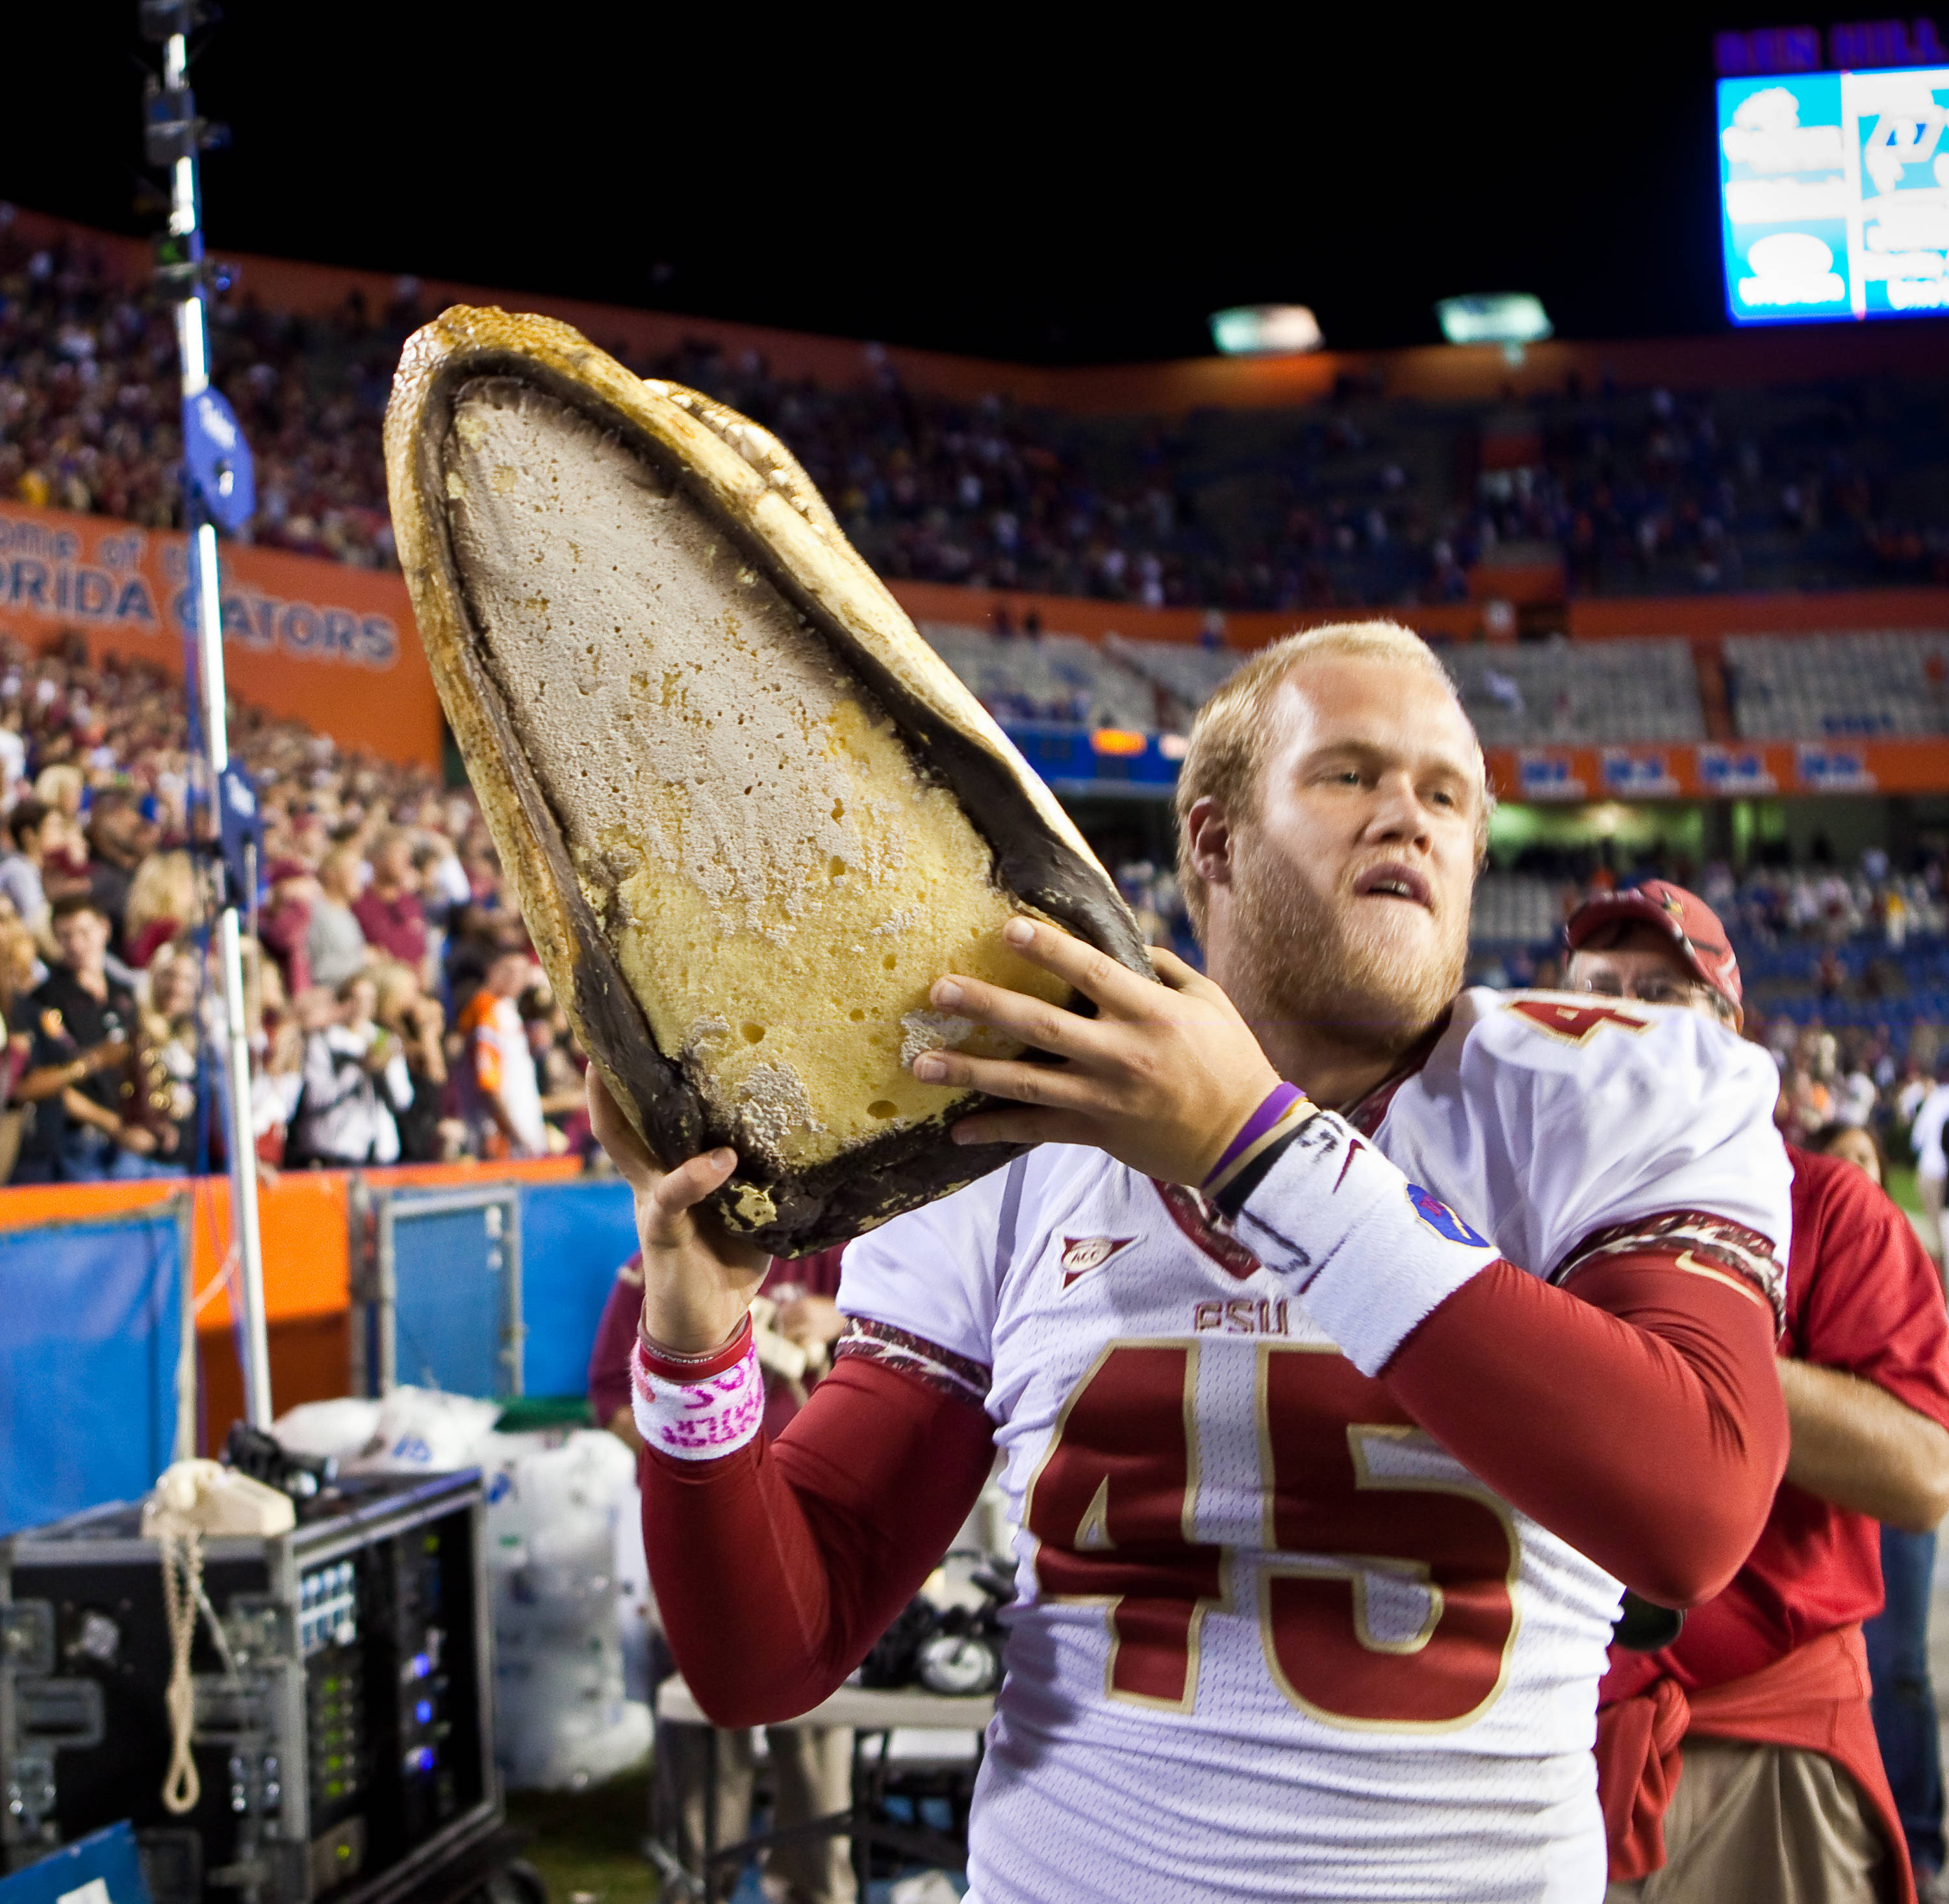 Shawn Powell (45) celebrates by holding the Gator head high